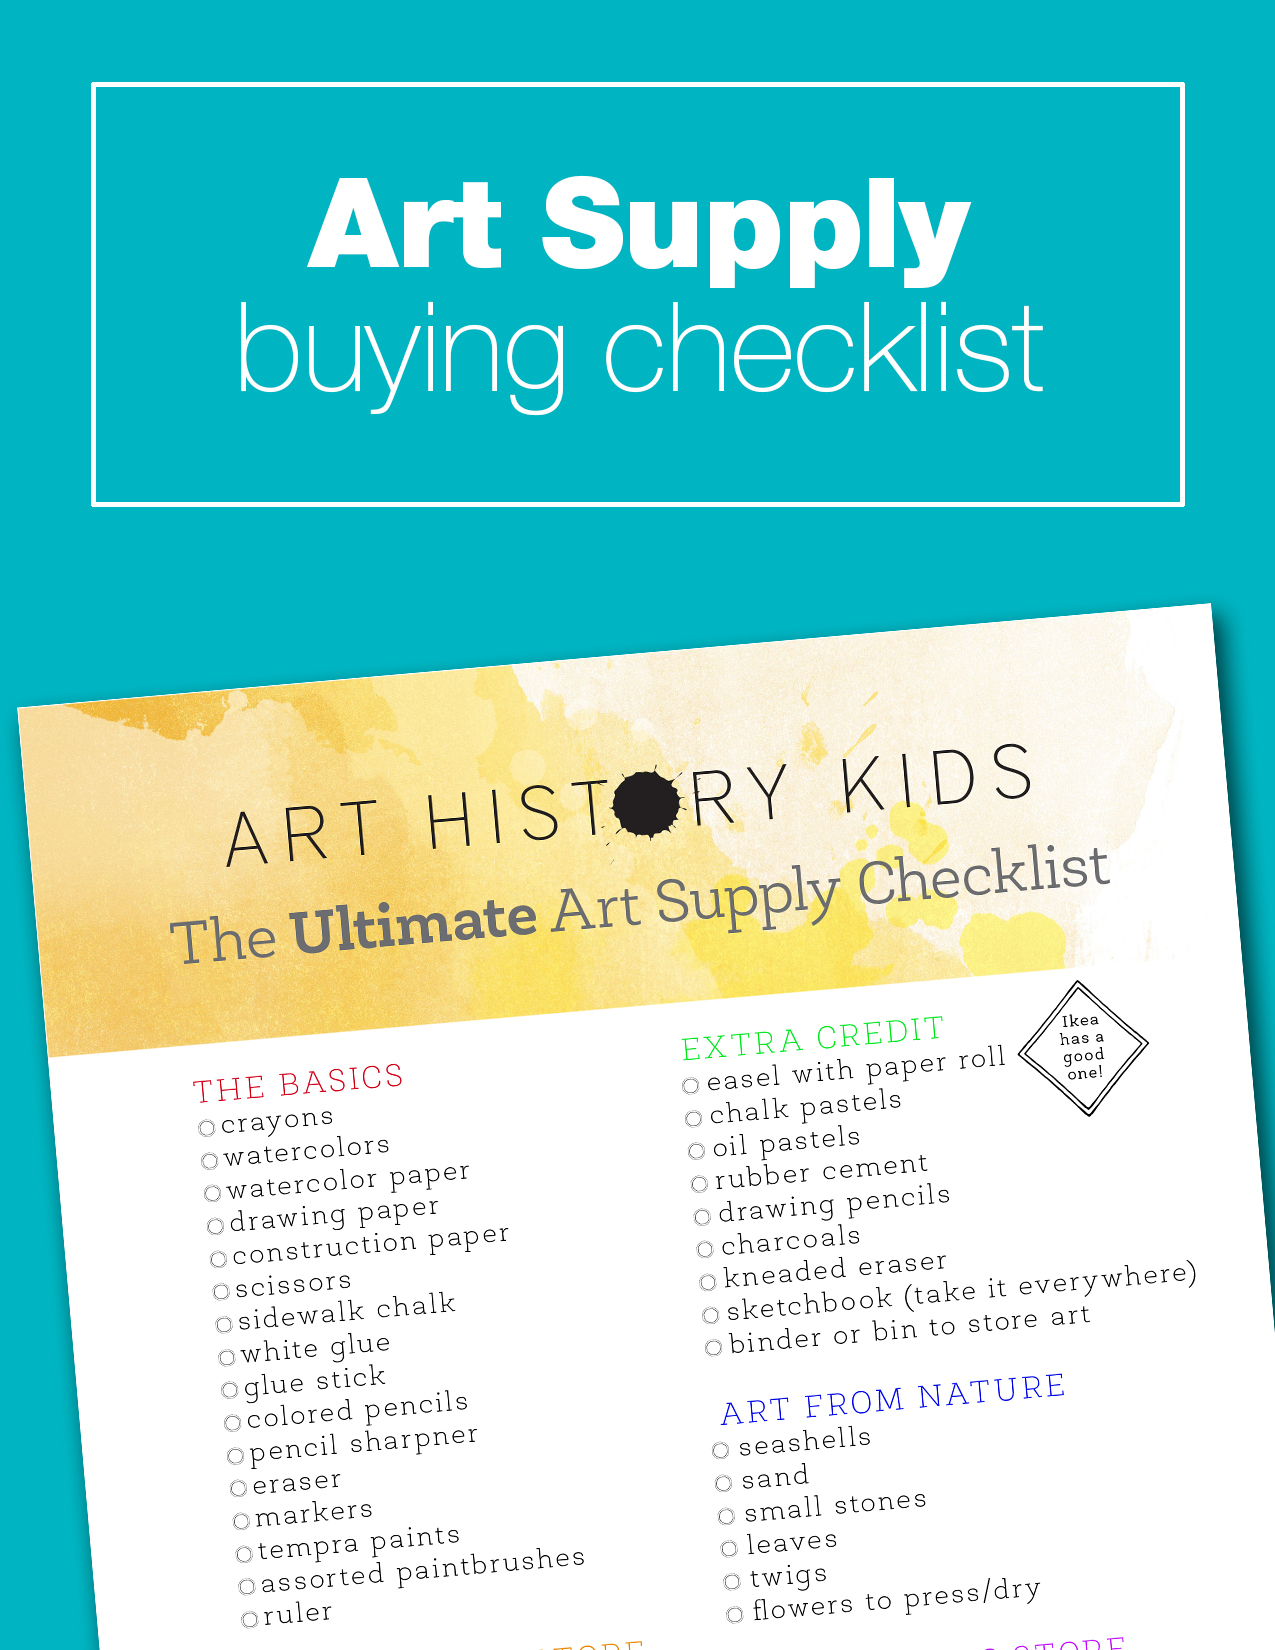 This handy checklist will help you sort out all the different art supply options. No need to buy everything at once, just prioritize your children's favorite art activities, and keep the checklist on file for future planning.